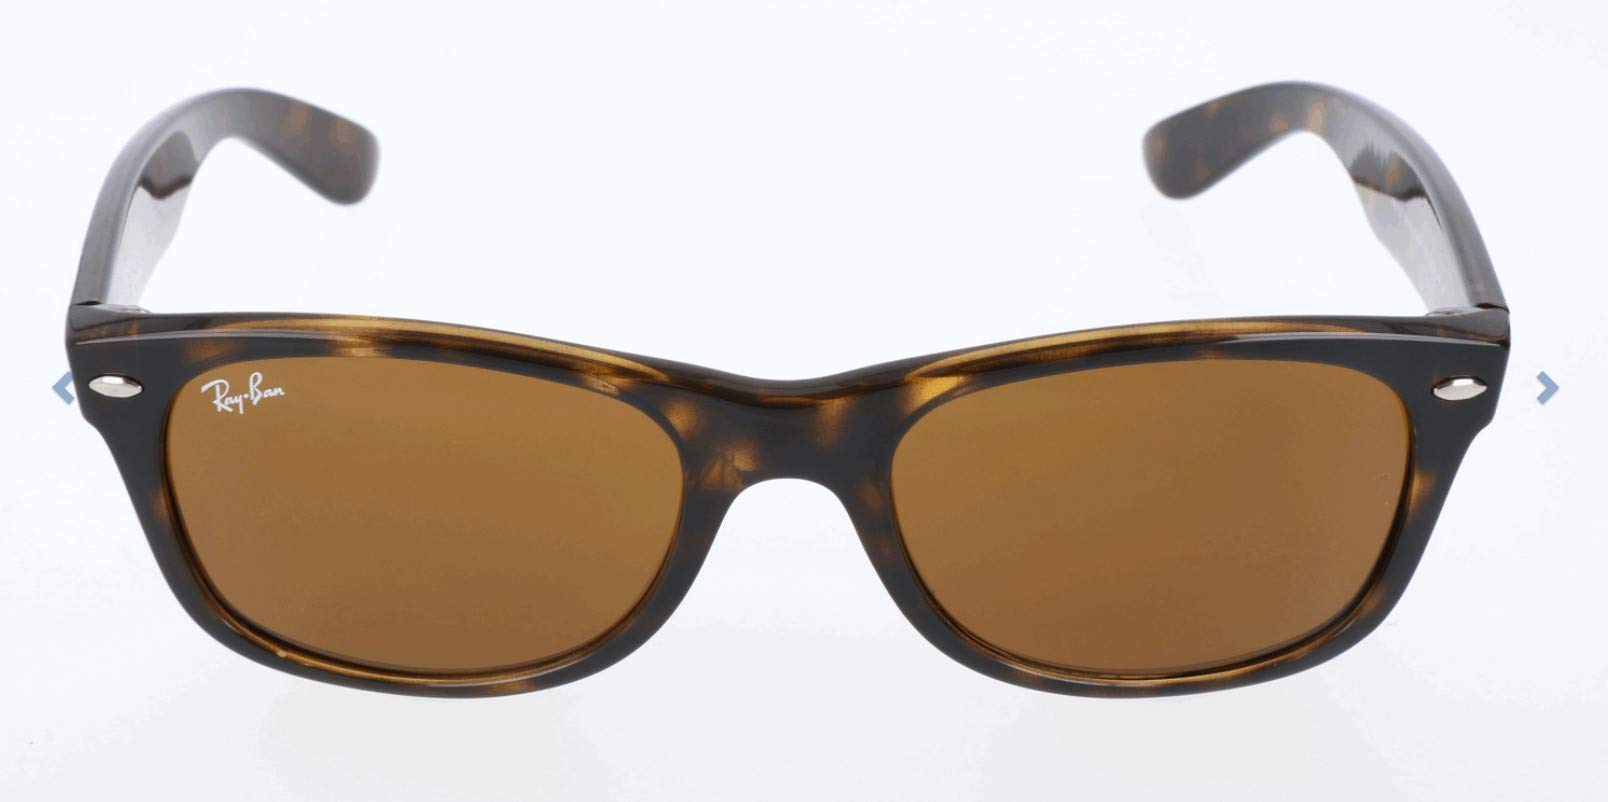 RAY-BAN RB2132 New Wayfarer Sunglasses, Light Havana/Brown, 55 mm by RAY-BAN